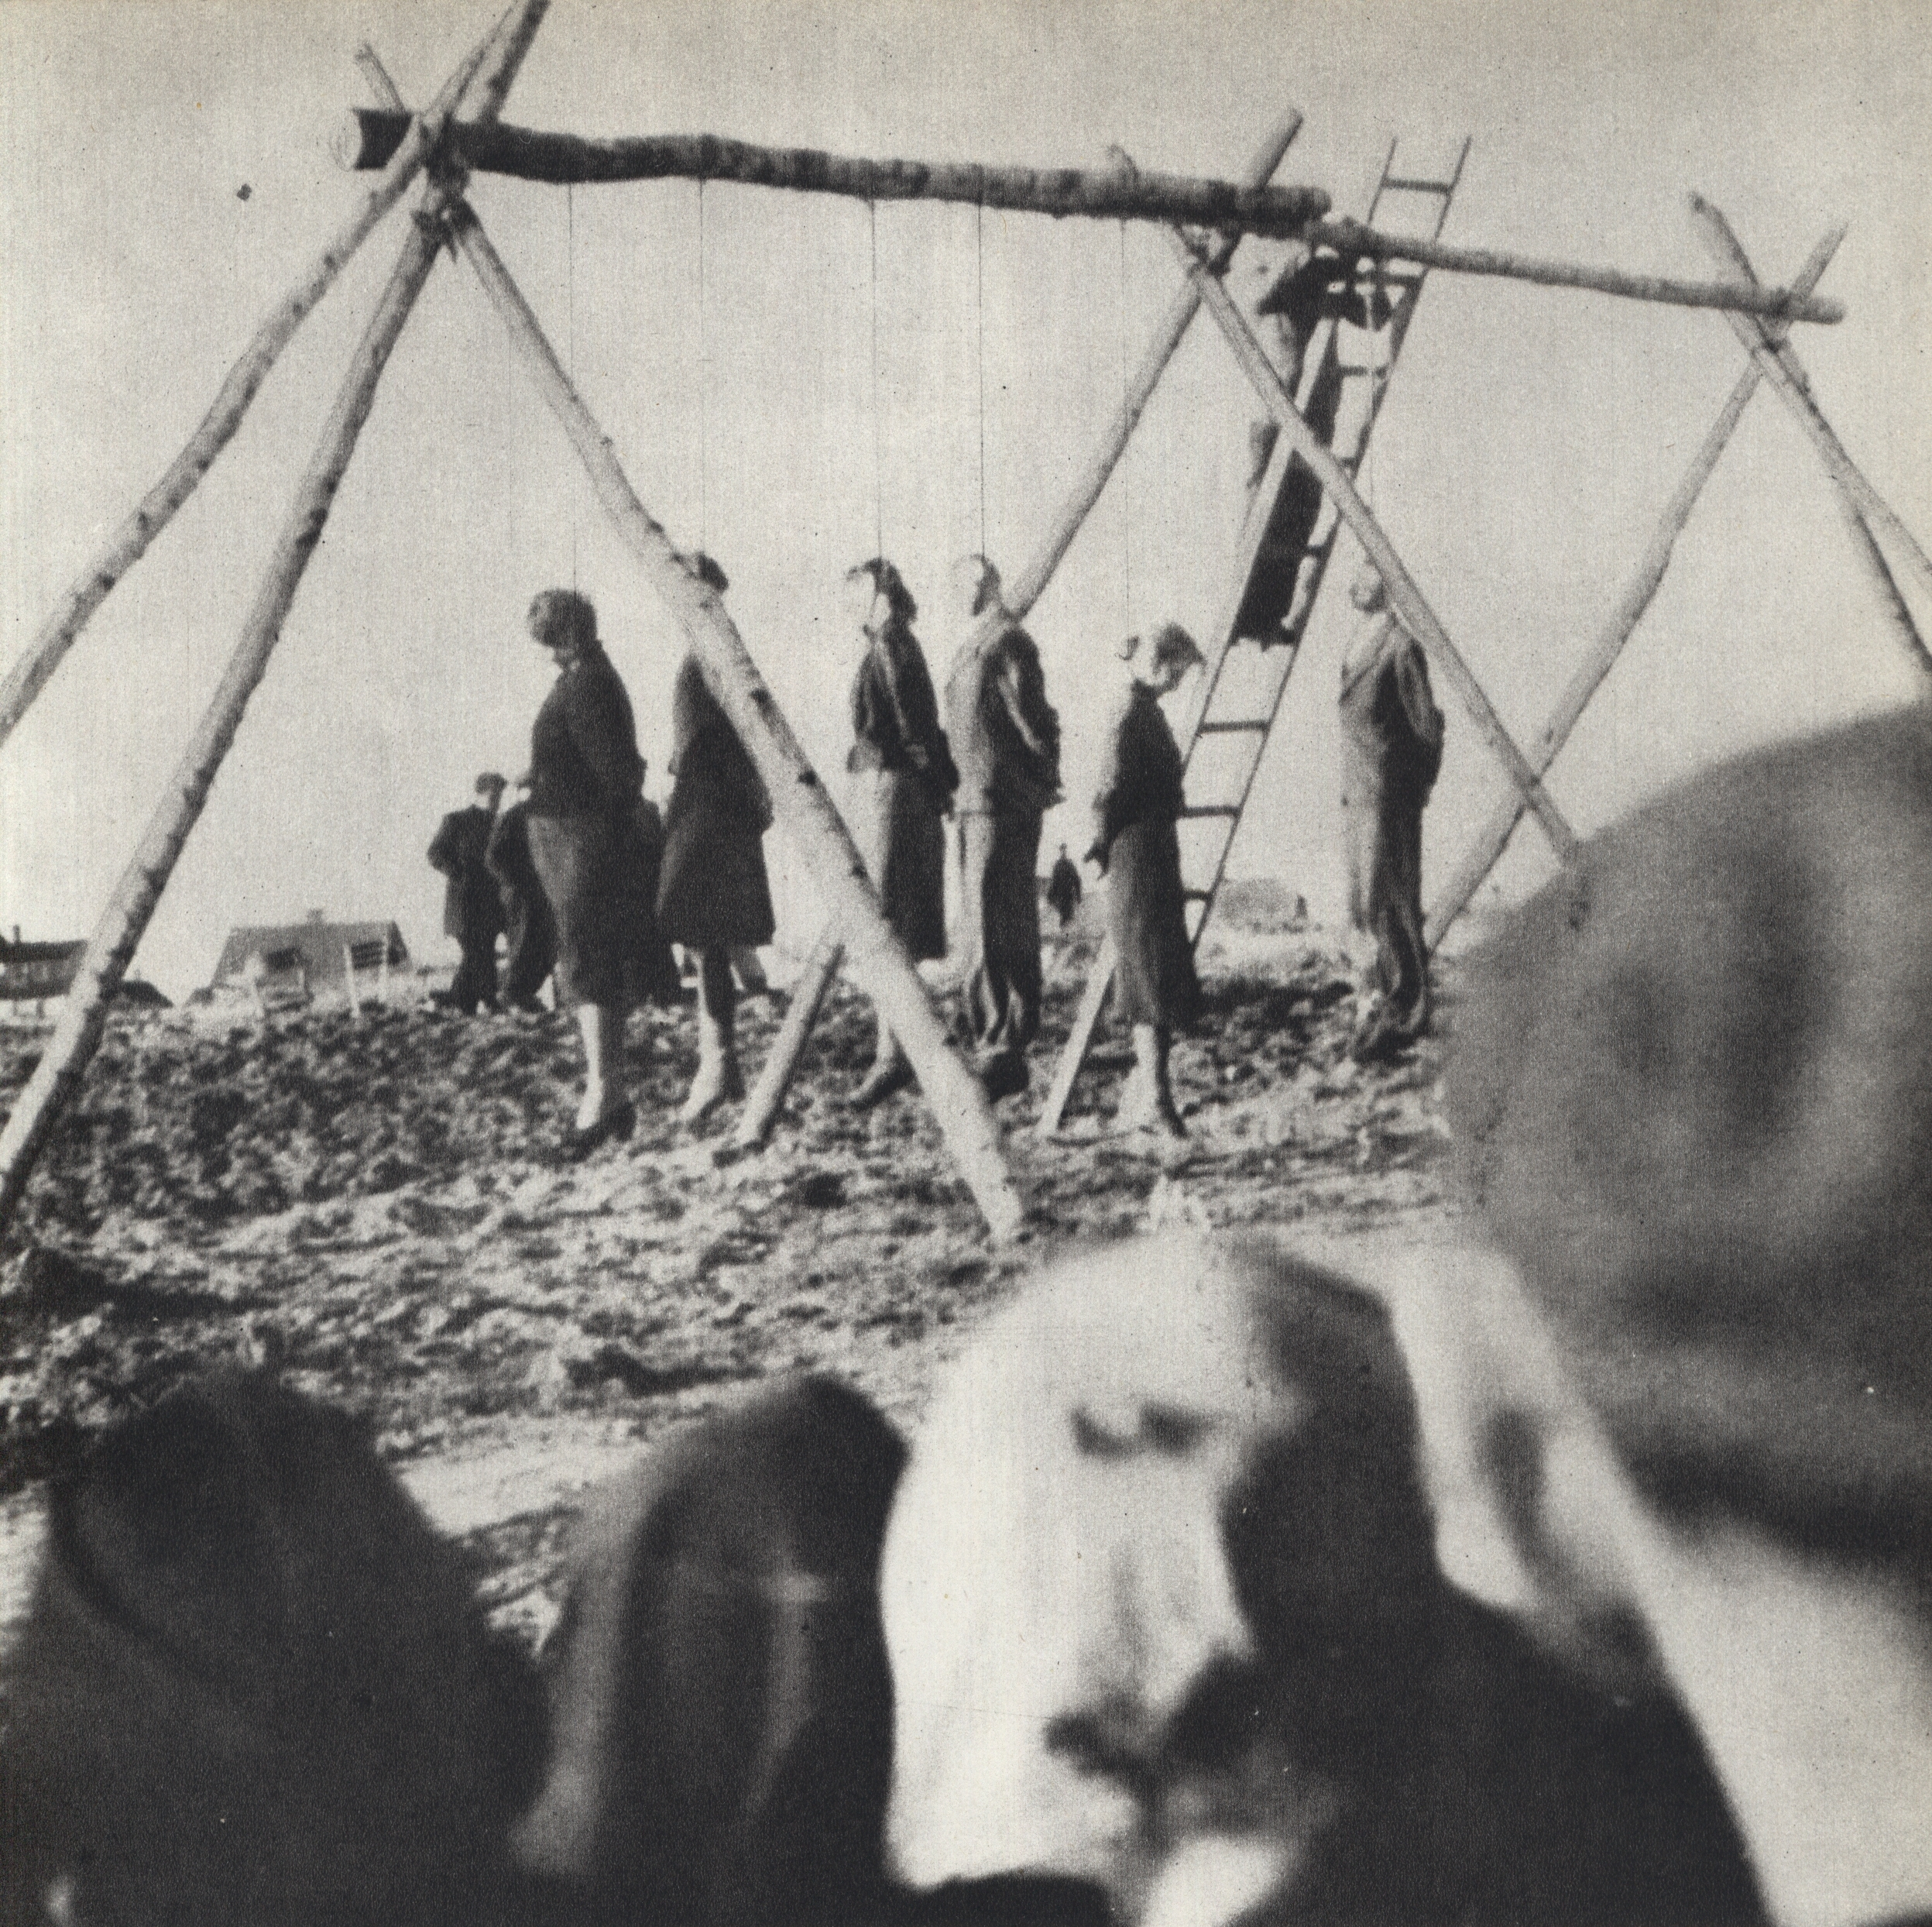 File:Public execution of 54 Poles in Rożki (1942).jpg